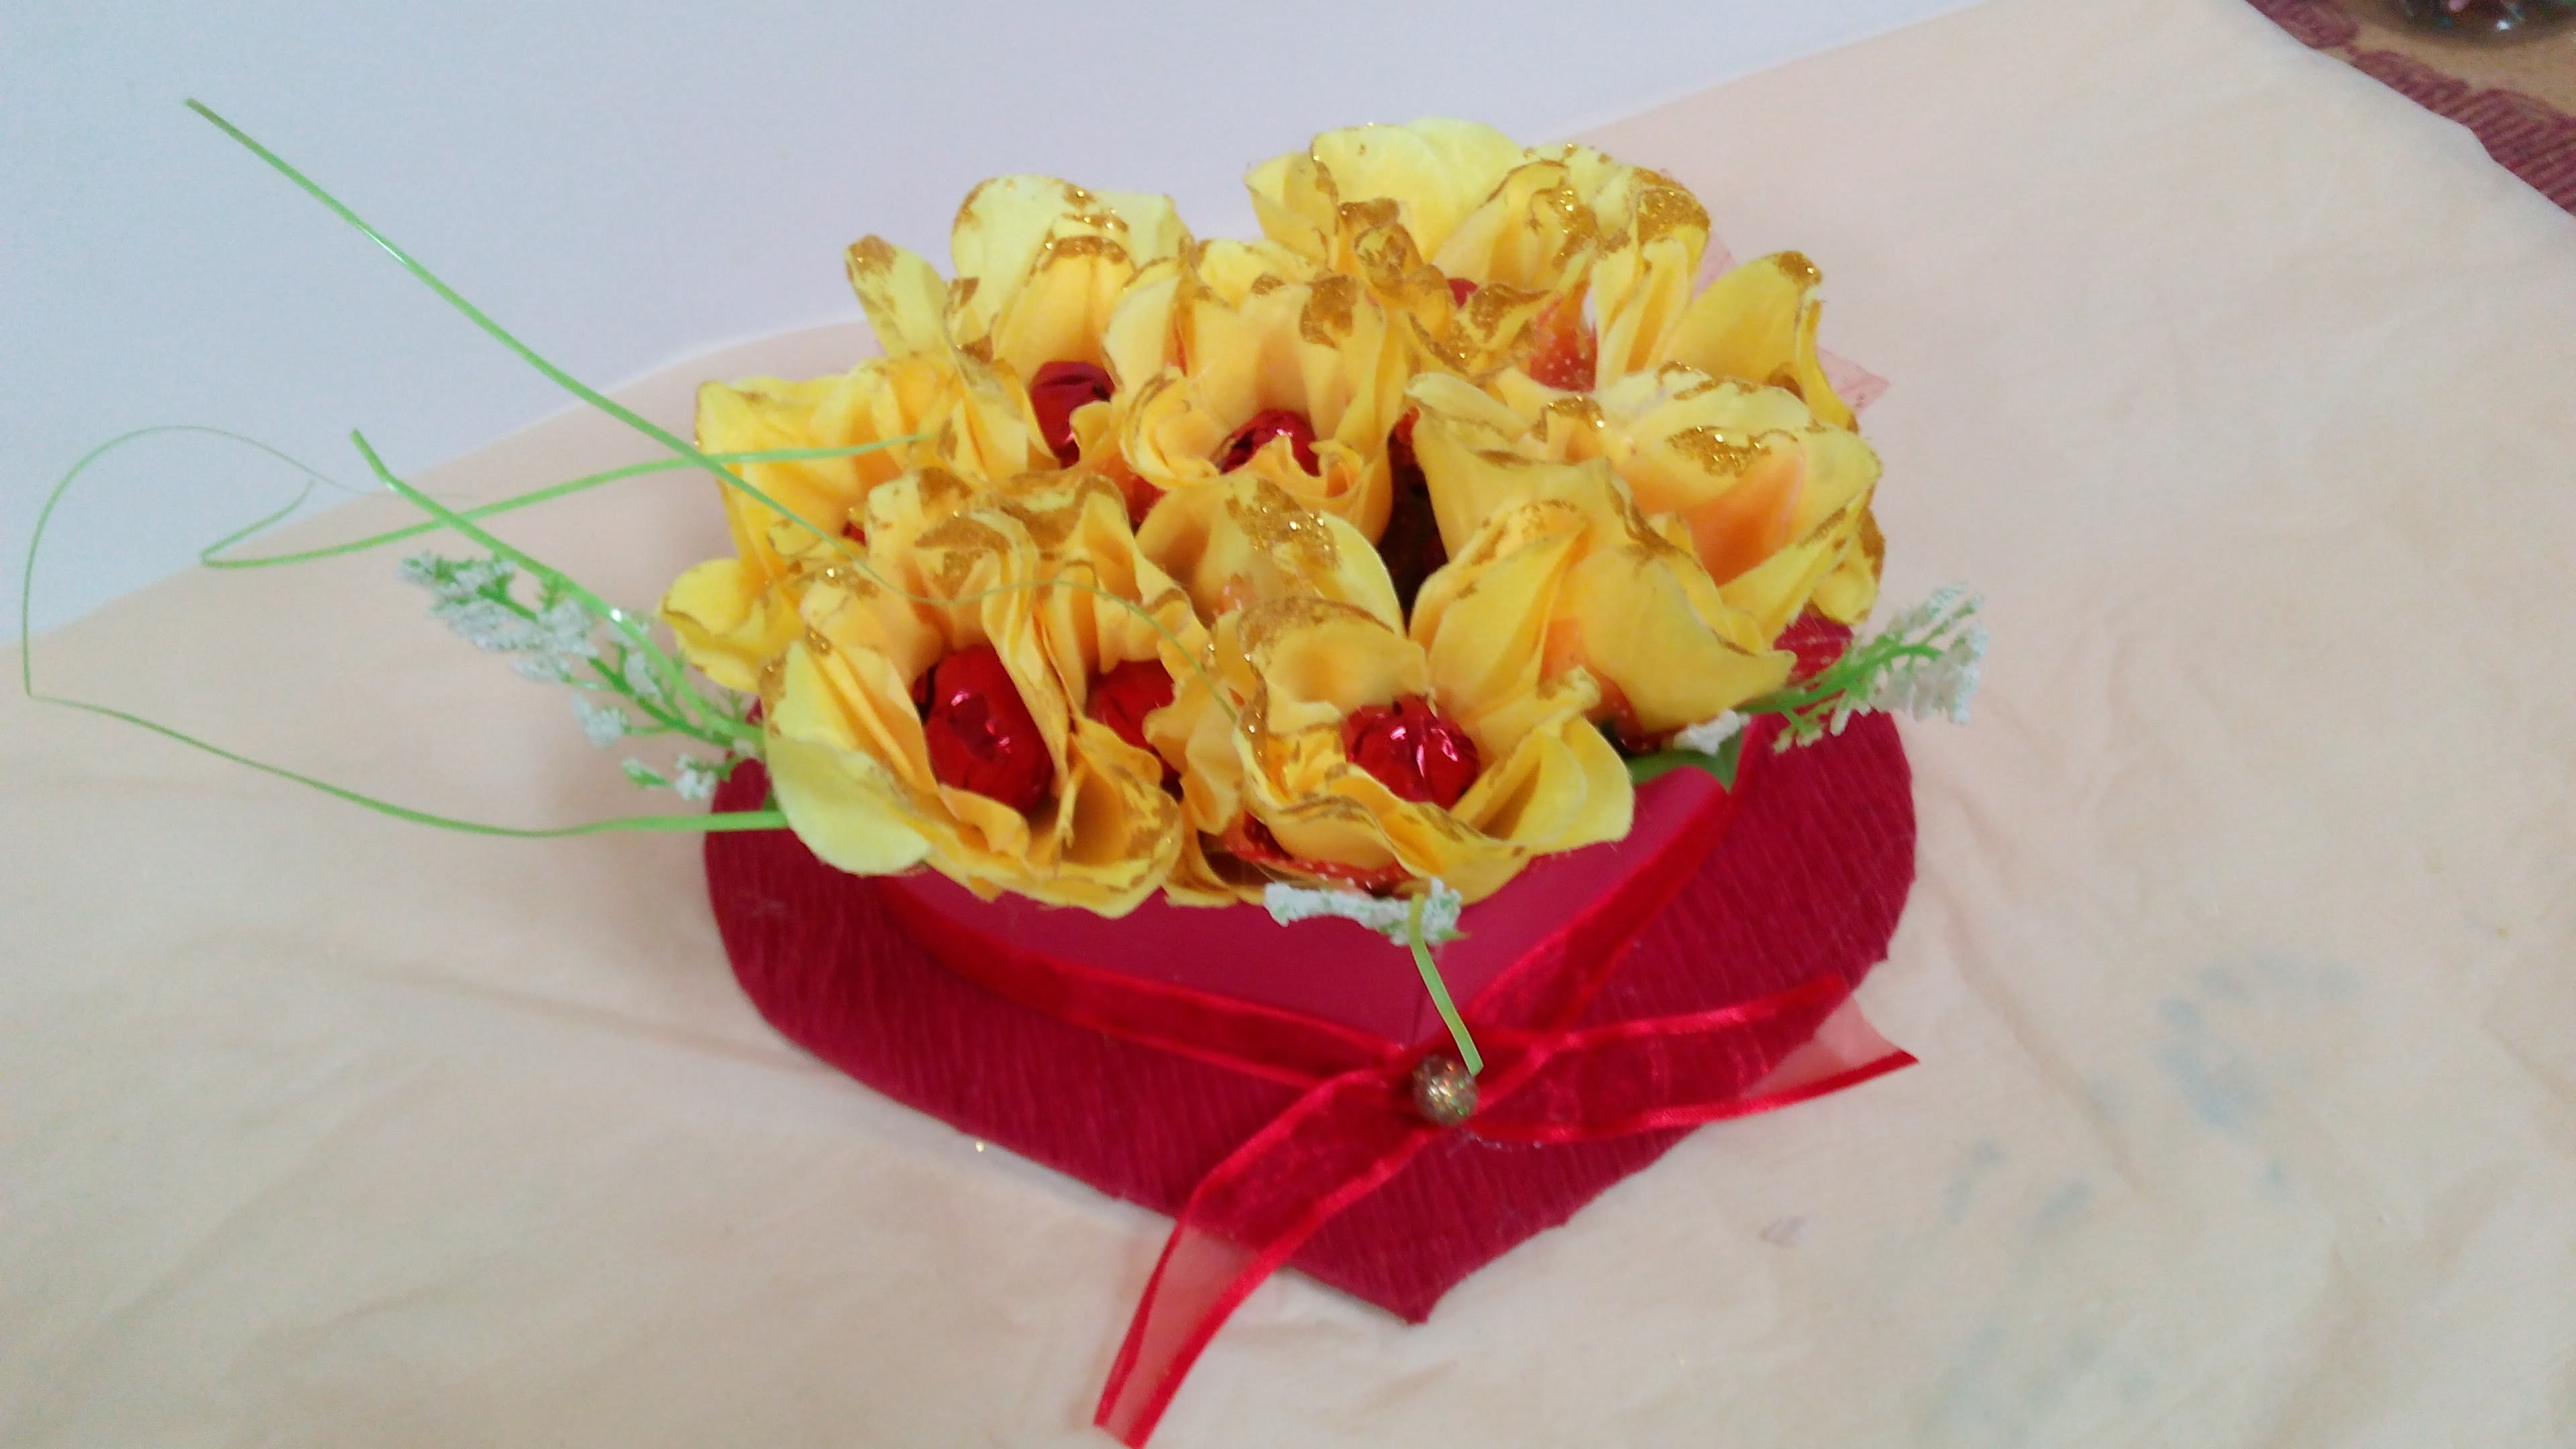 How to Make a Chocolate Flower Bouquet - Valentine's Gift Idea -  Floral Valentine Heart Bouquet !